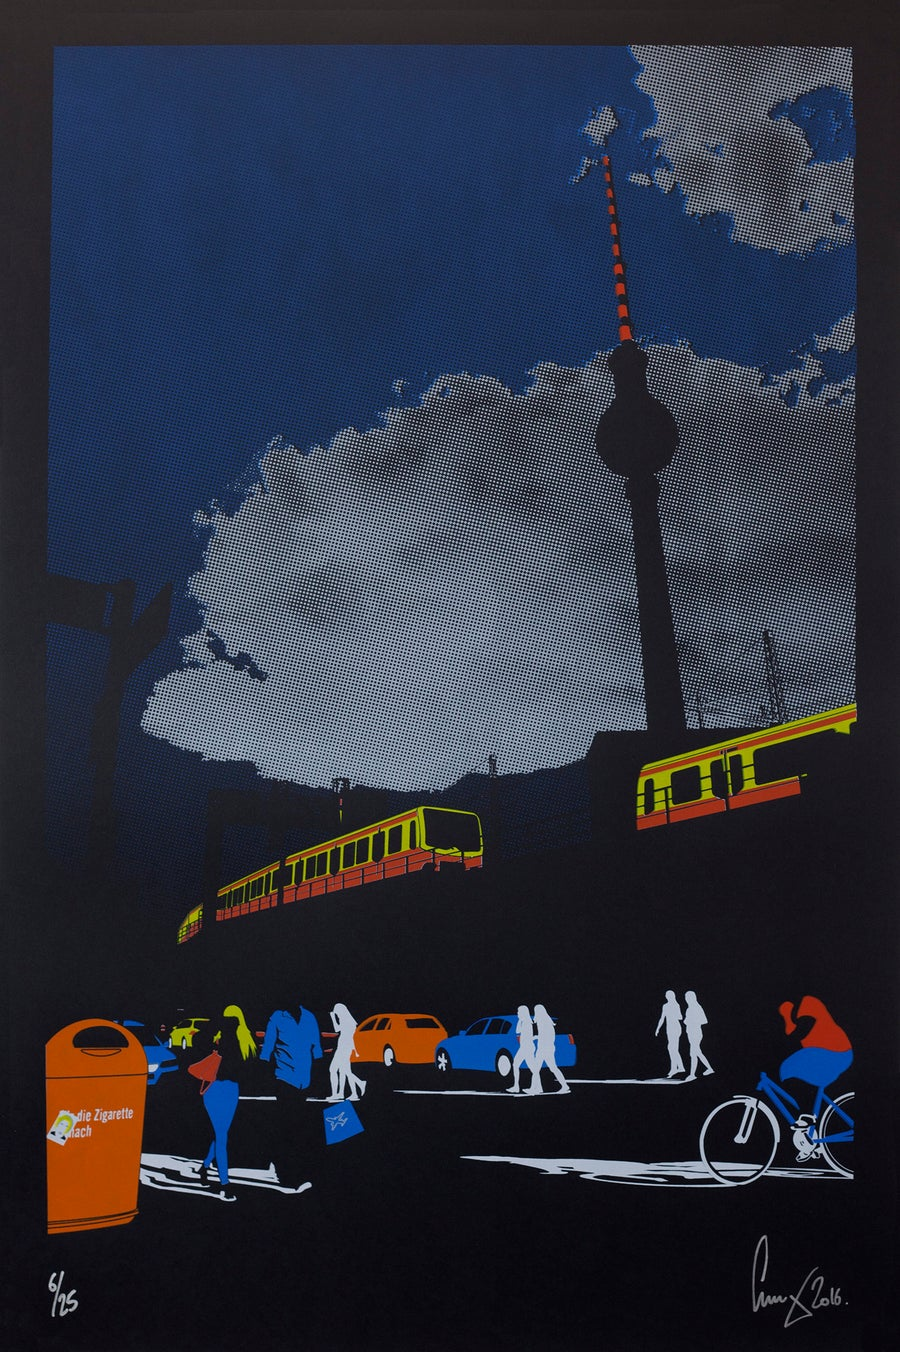 Image of A1 Berlin silhouettes